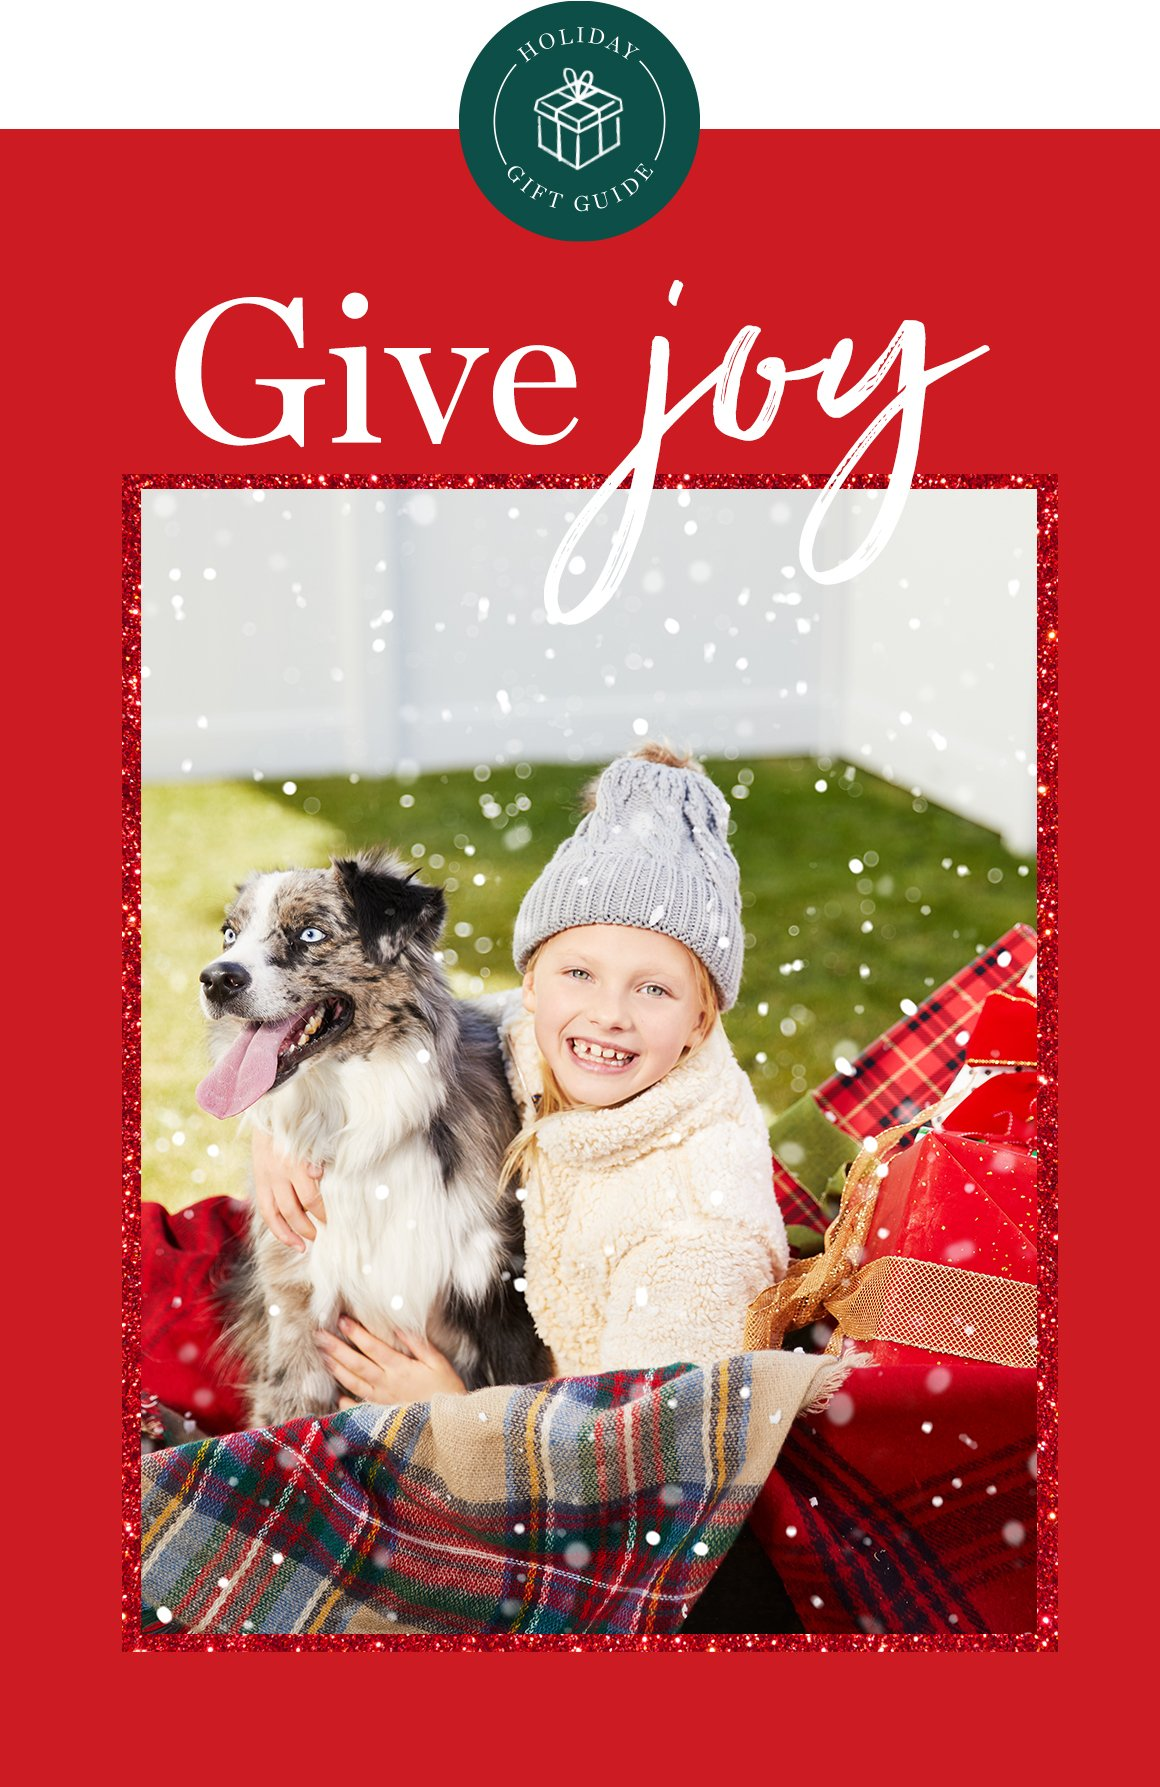 Holiday gift guide. Give Joy.